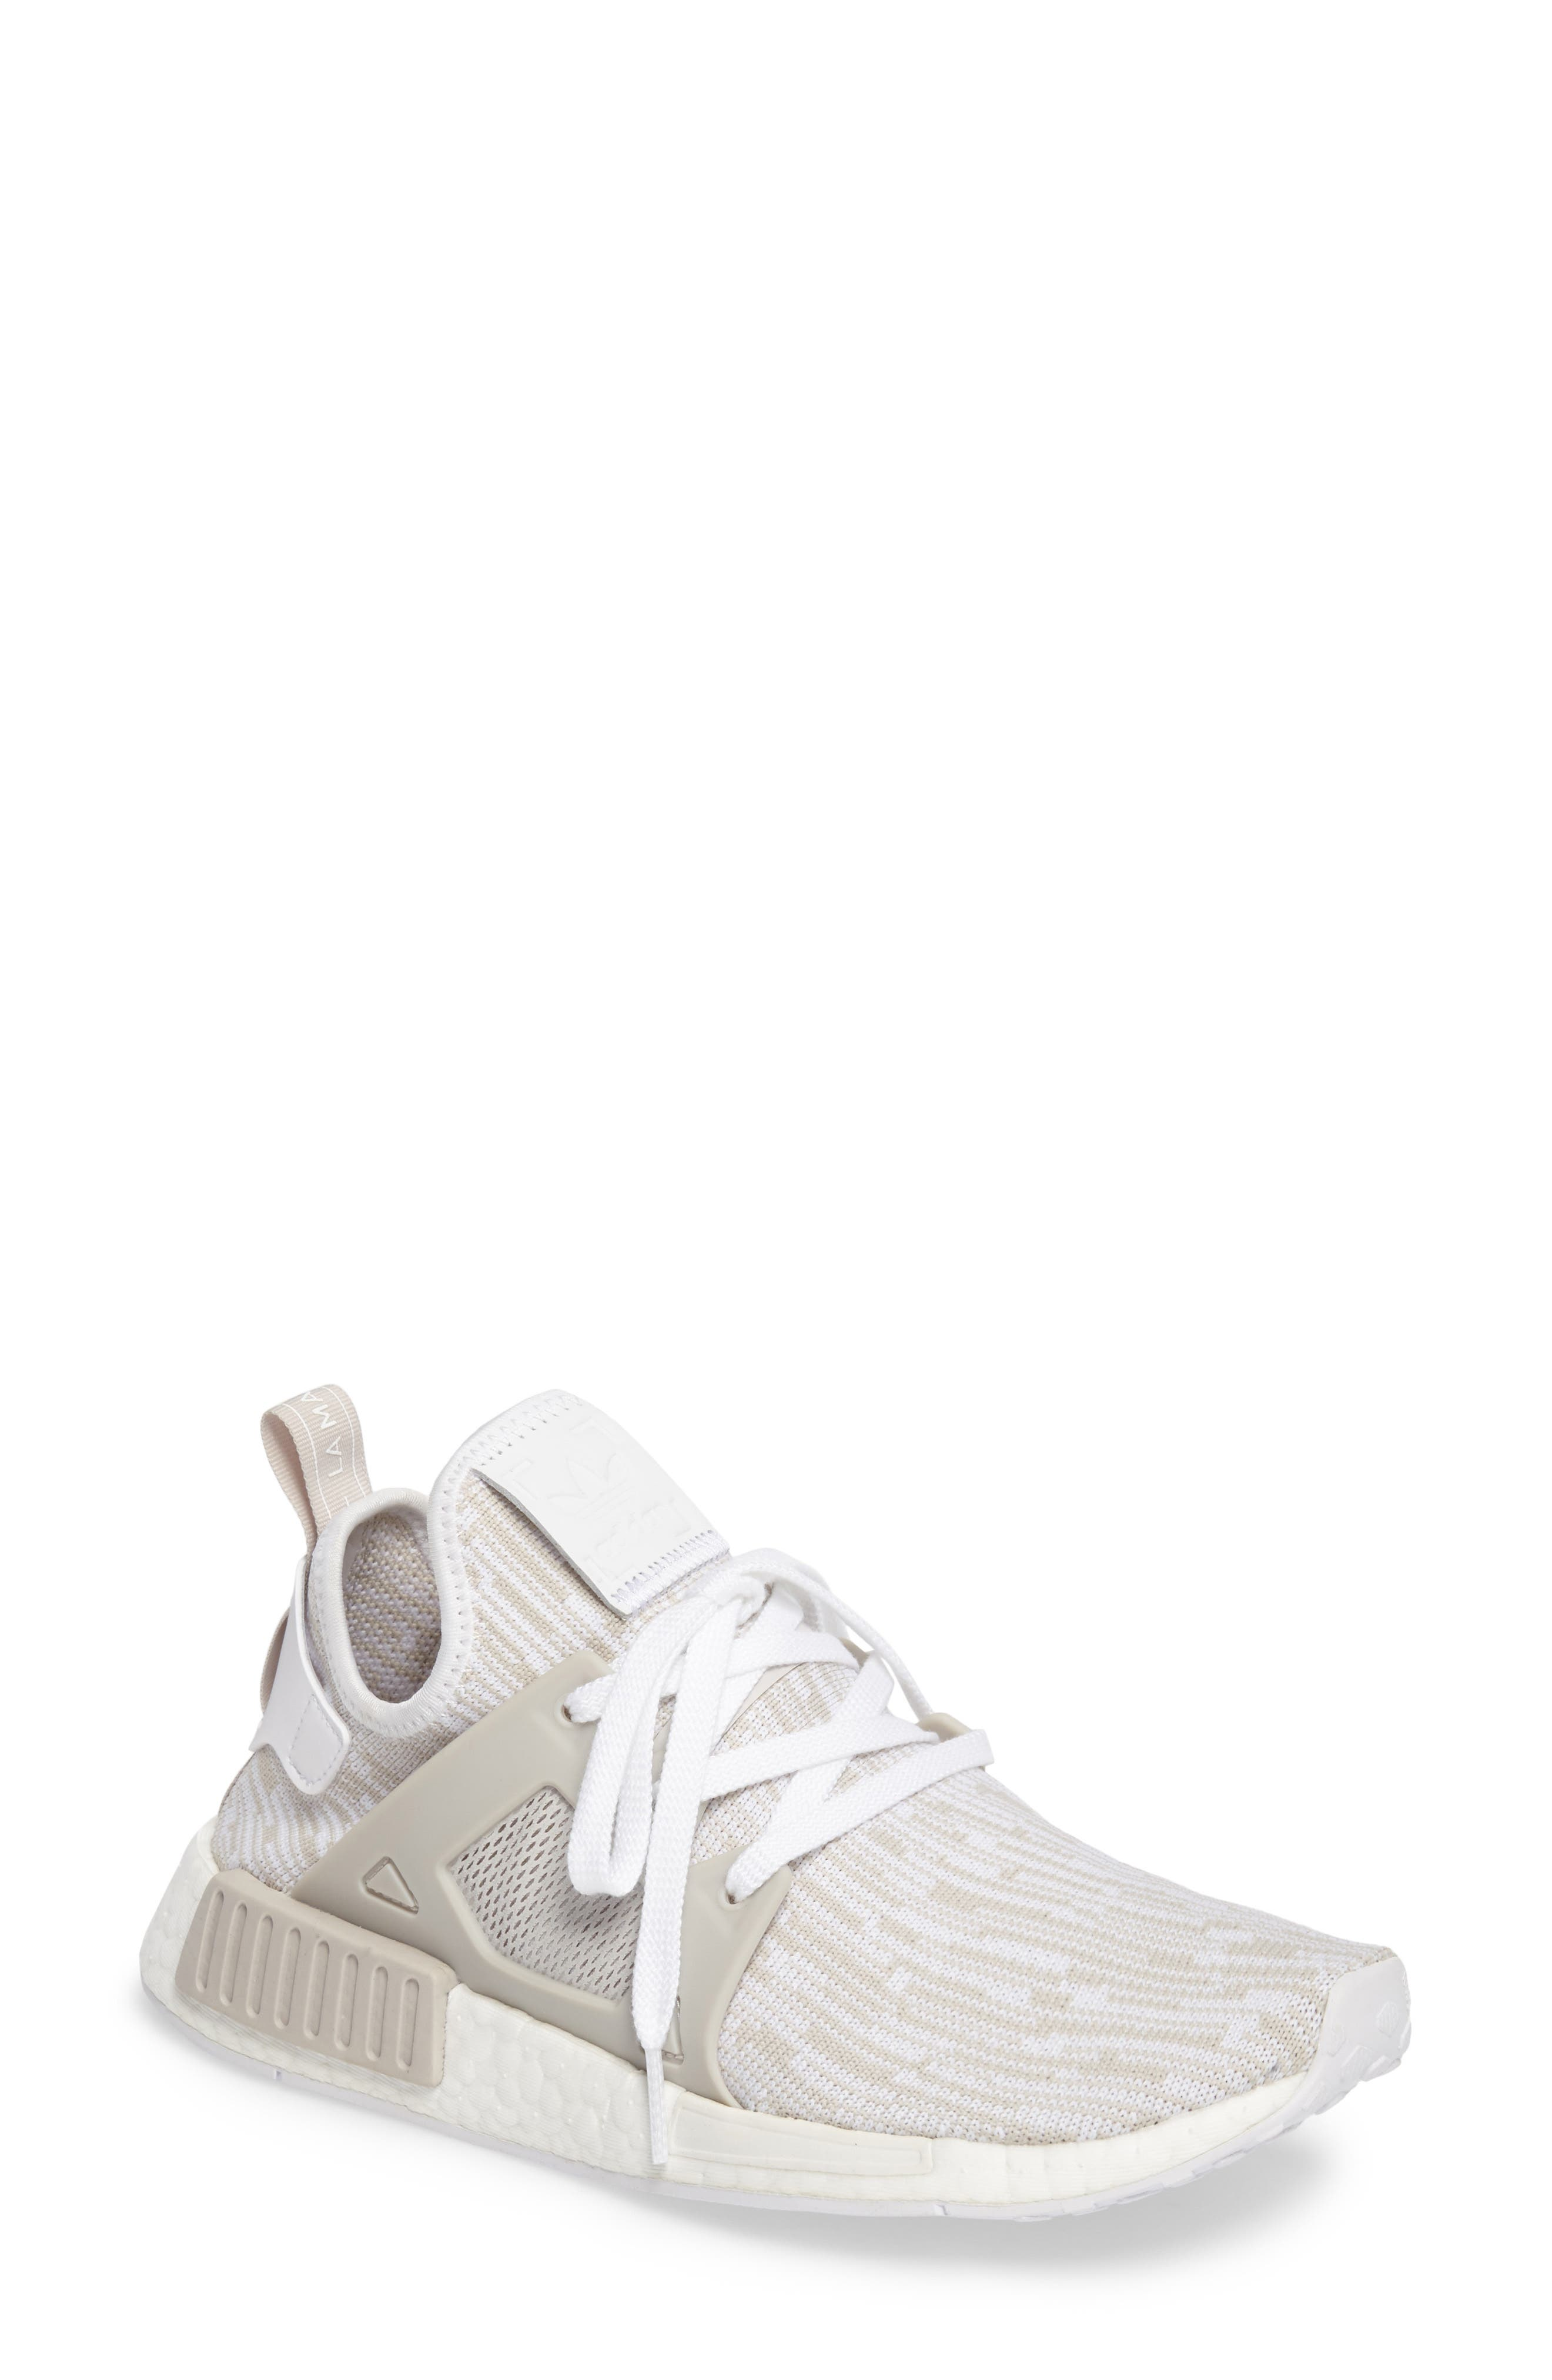 adidas NMD XR1 Athletic Shoe (Women)